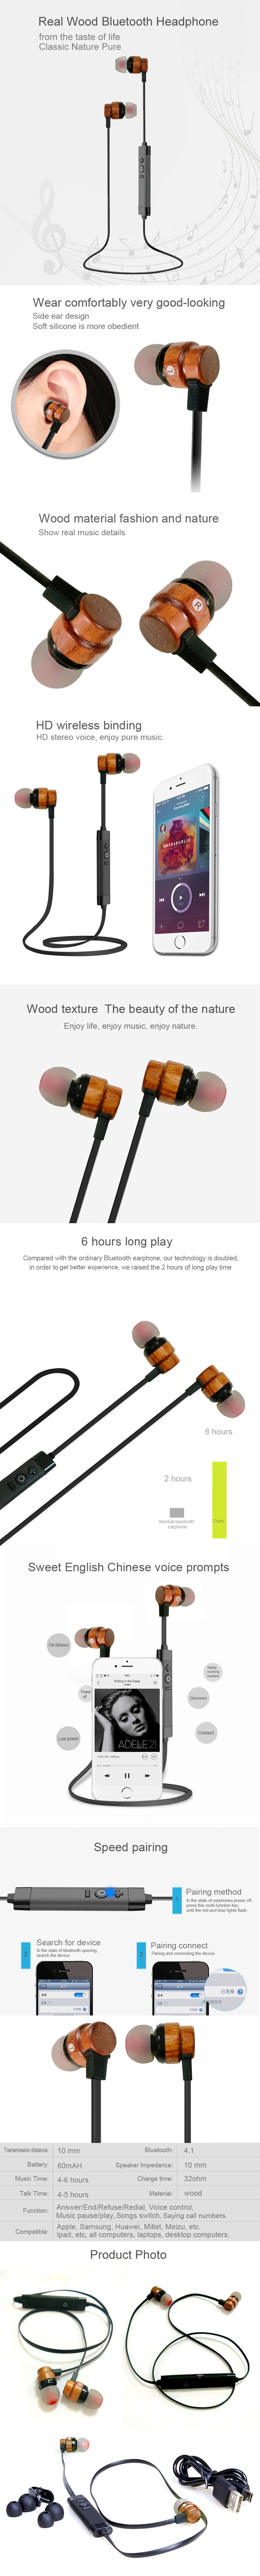 wood wireless earphone